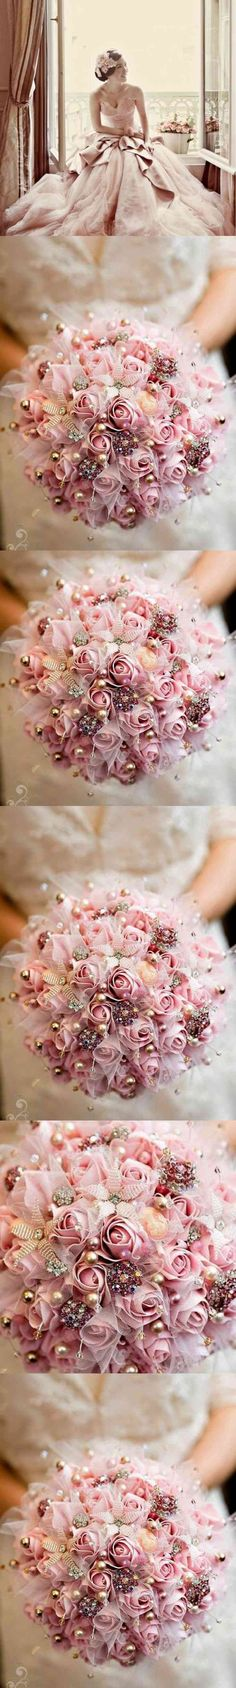 Fabric Wedding Bouquet, Brooch Wedding, Winter wedding, Bridal, Bridesmaids, Romantic Bride,Pink flowers Bouquet, Coco Chic Fresh and Modern  The Alexa ~ Hand made Bouquet is romantically is a simple fresh and modern design. Imaginary of a girls charm and elegance makes this hand made silk flowers bridal bouquet with pearls and small crystal  brooches  one the best (...) / This is my custom signature... This is my custom signature... This is my custom signature... This (...) (via…